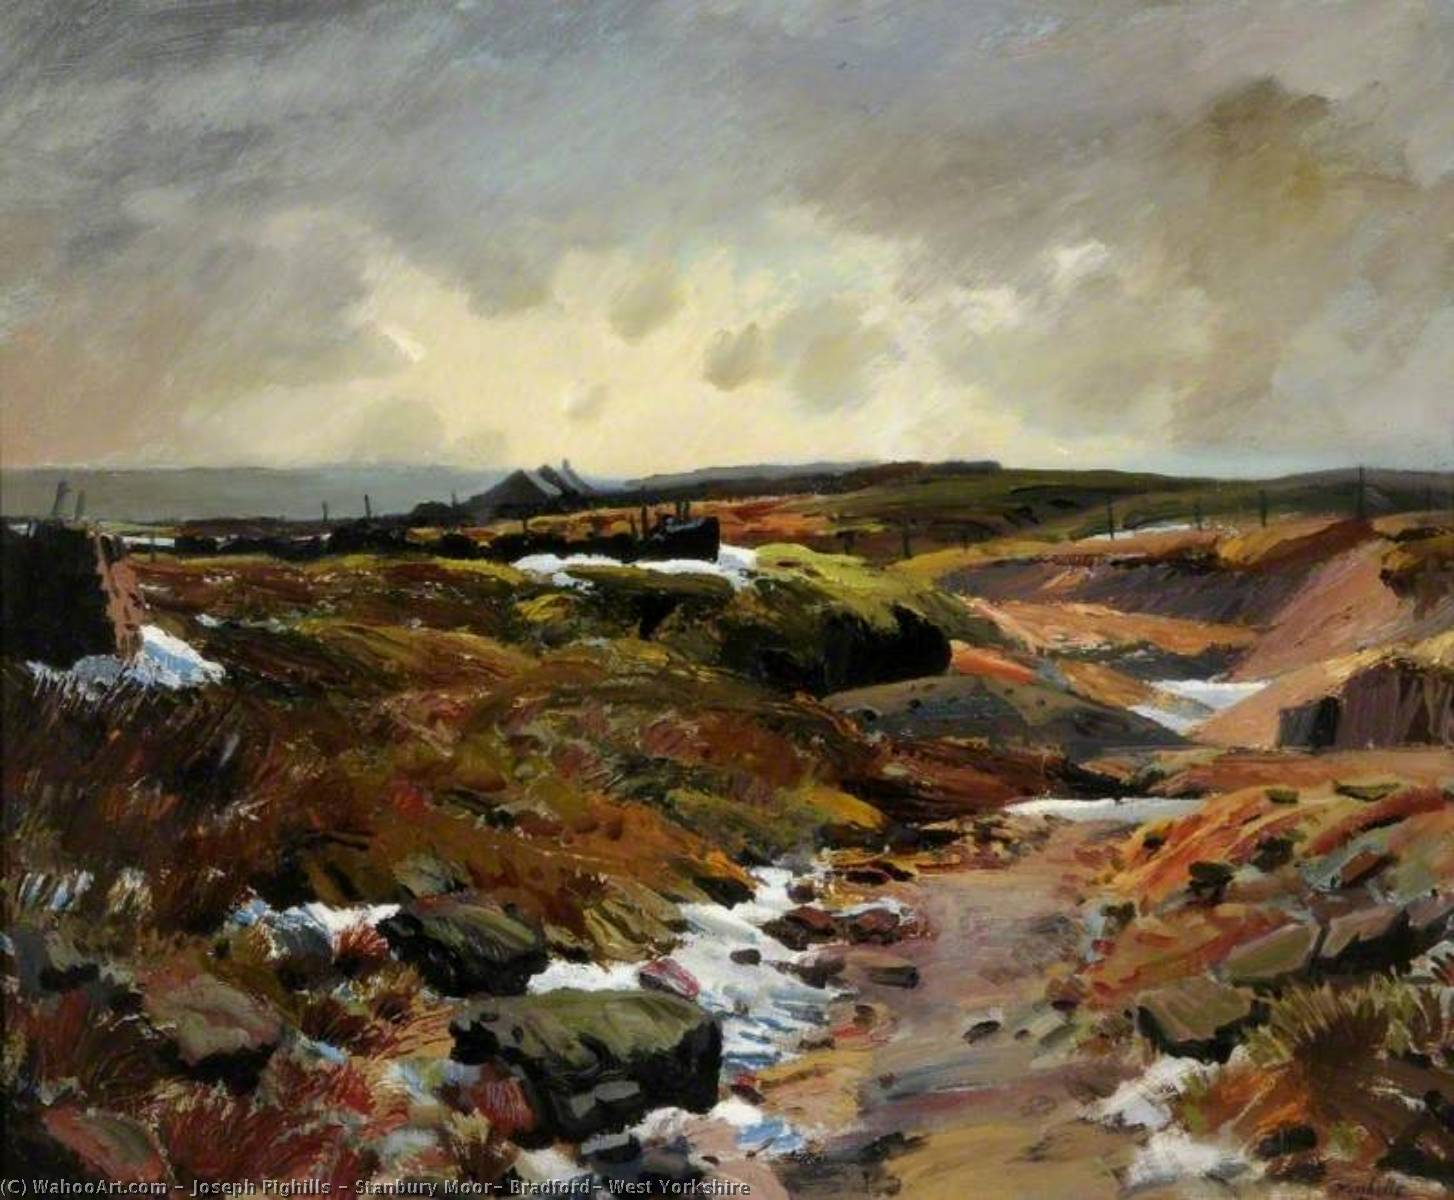 Stanbury Moor, Bradford, West Yorkshire, Oil On Canvas by Joseph Pighills